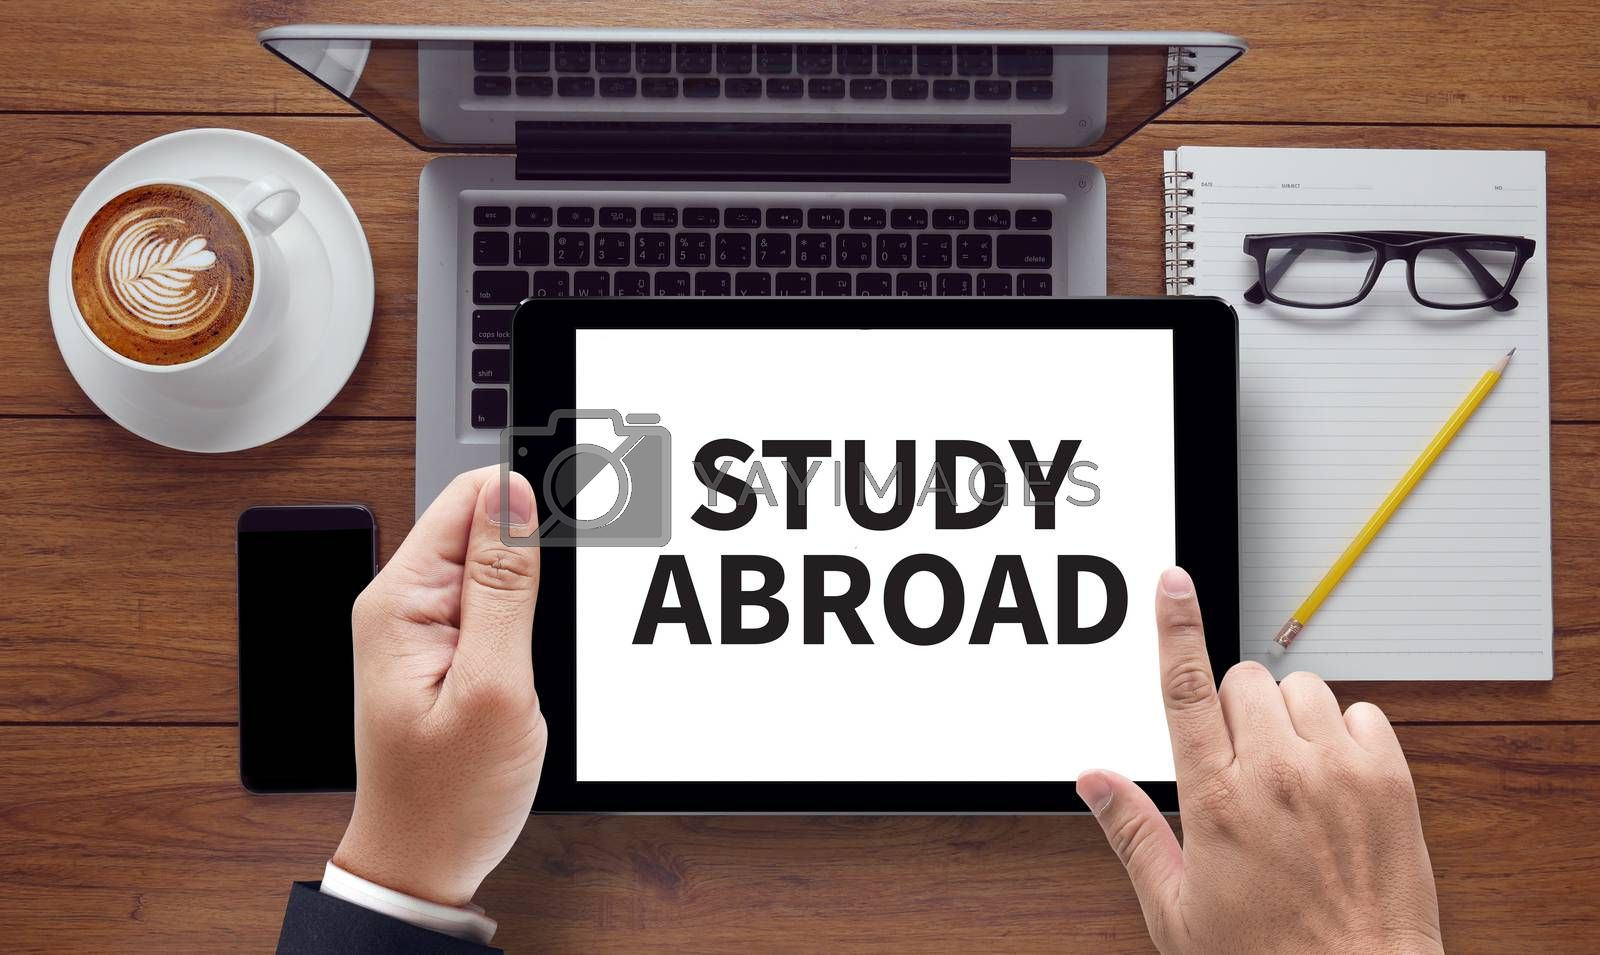 STUDY ABROAD, on the tablet pc screen held by businessman hands - online, top view